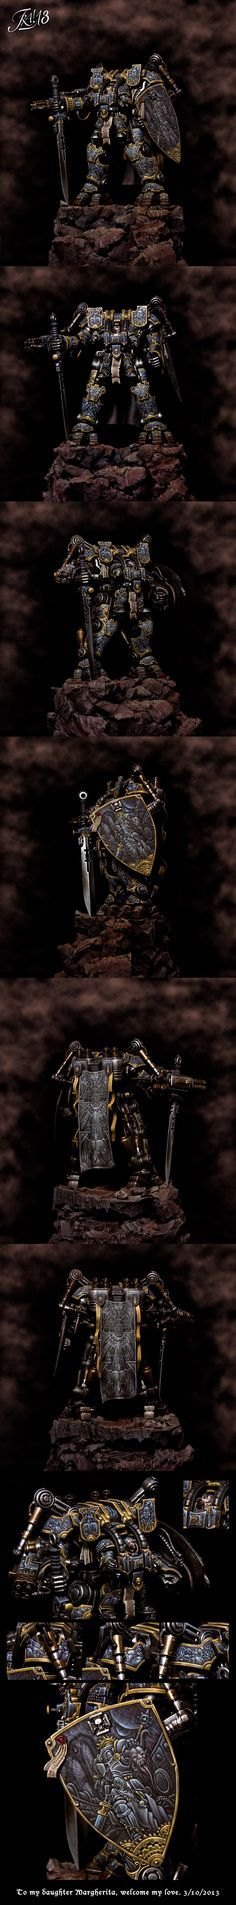 CoolMiniOrNot - The gothic dreadknight - Gold Vehicle GD italy 2013 by franciuus